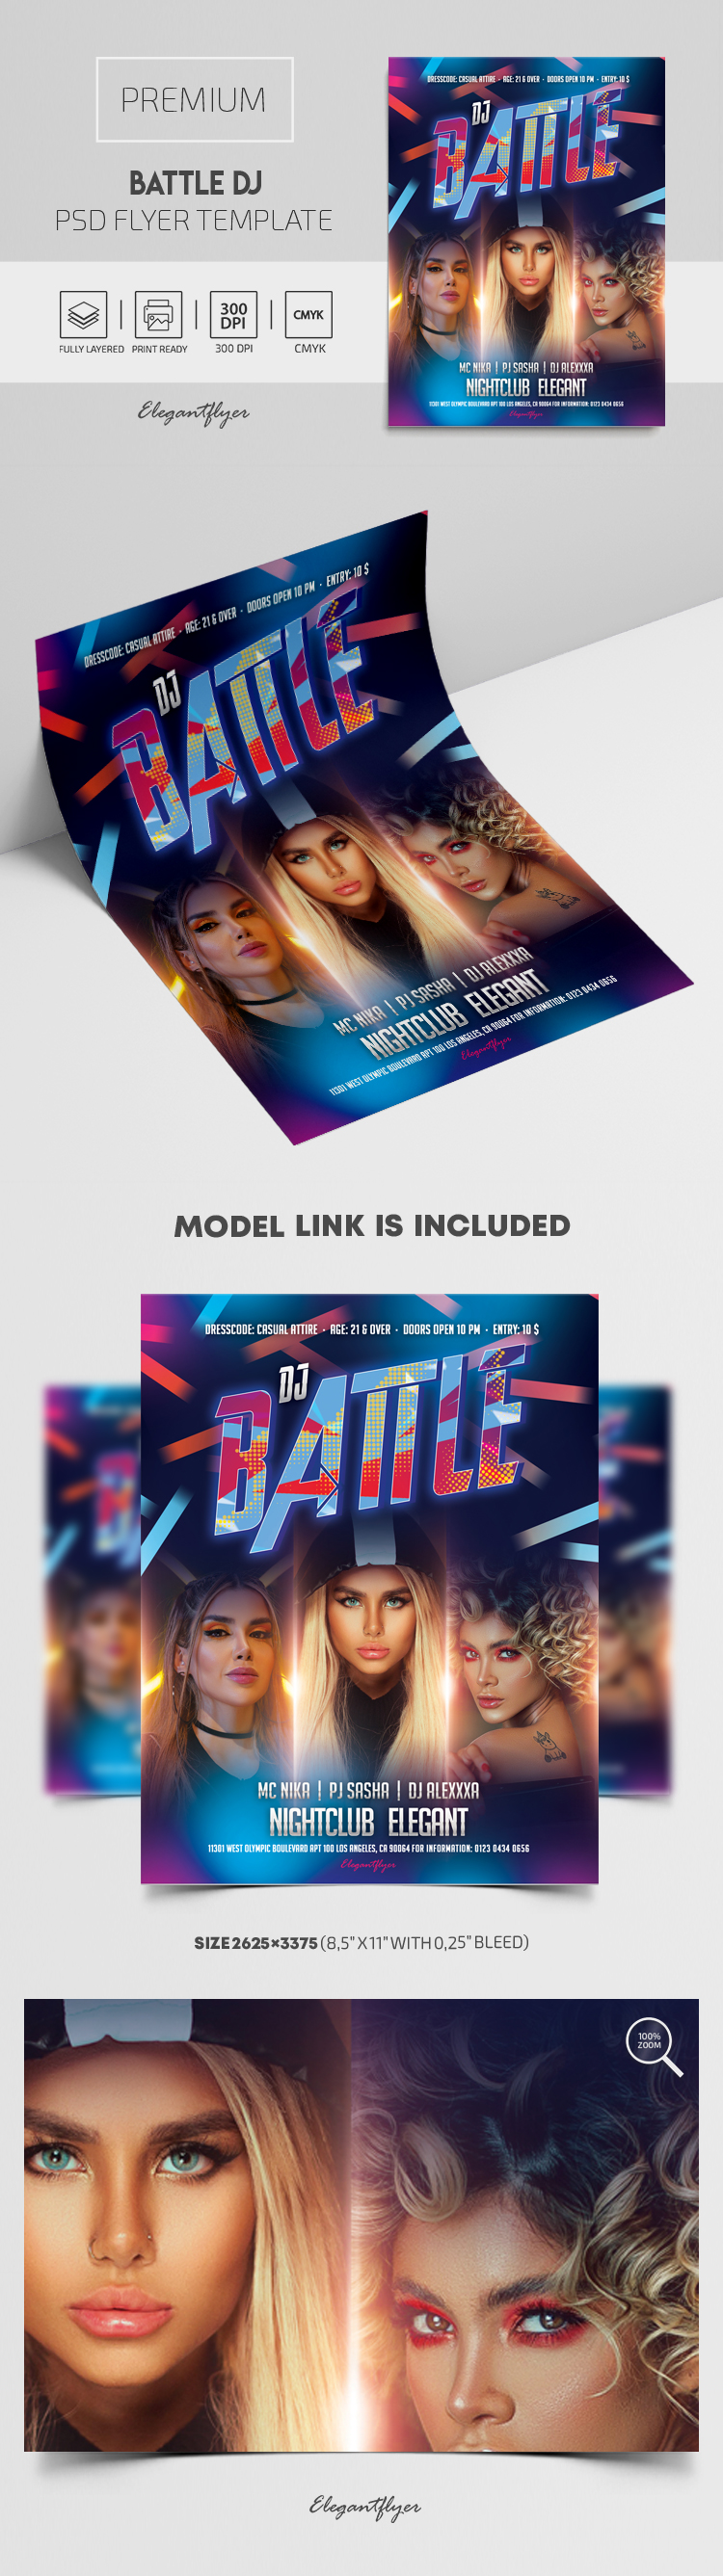 Battle DJ – Premium PSD Flyer Template